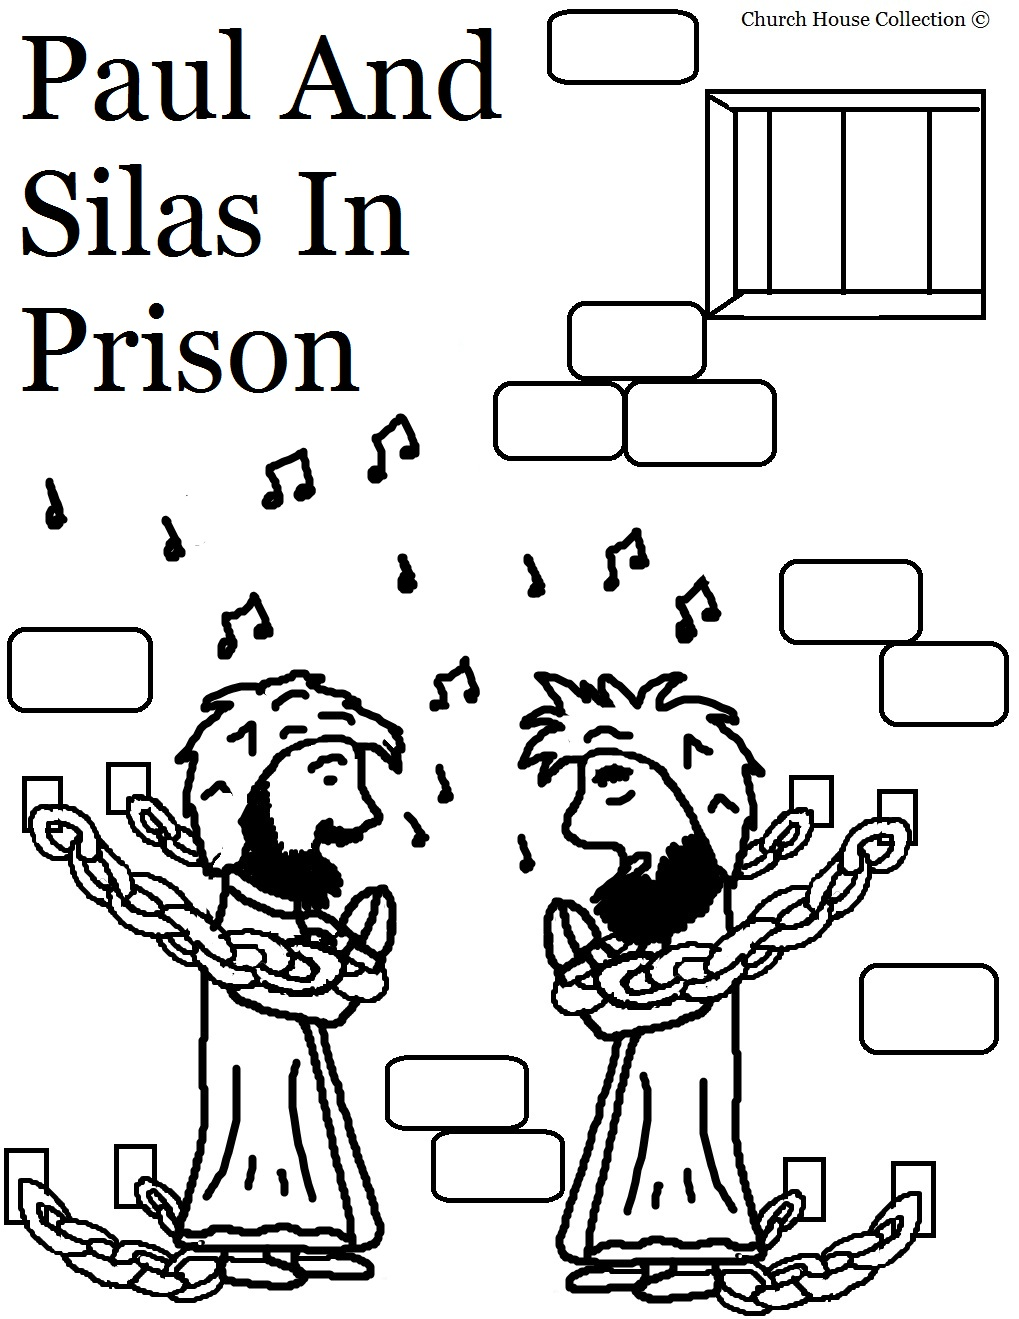 Paul And Silas Coloring Pages.